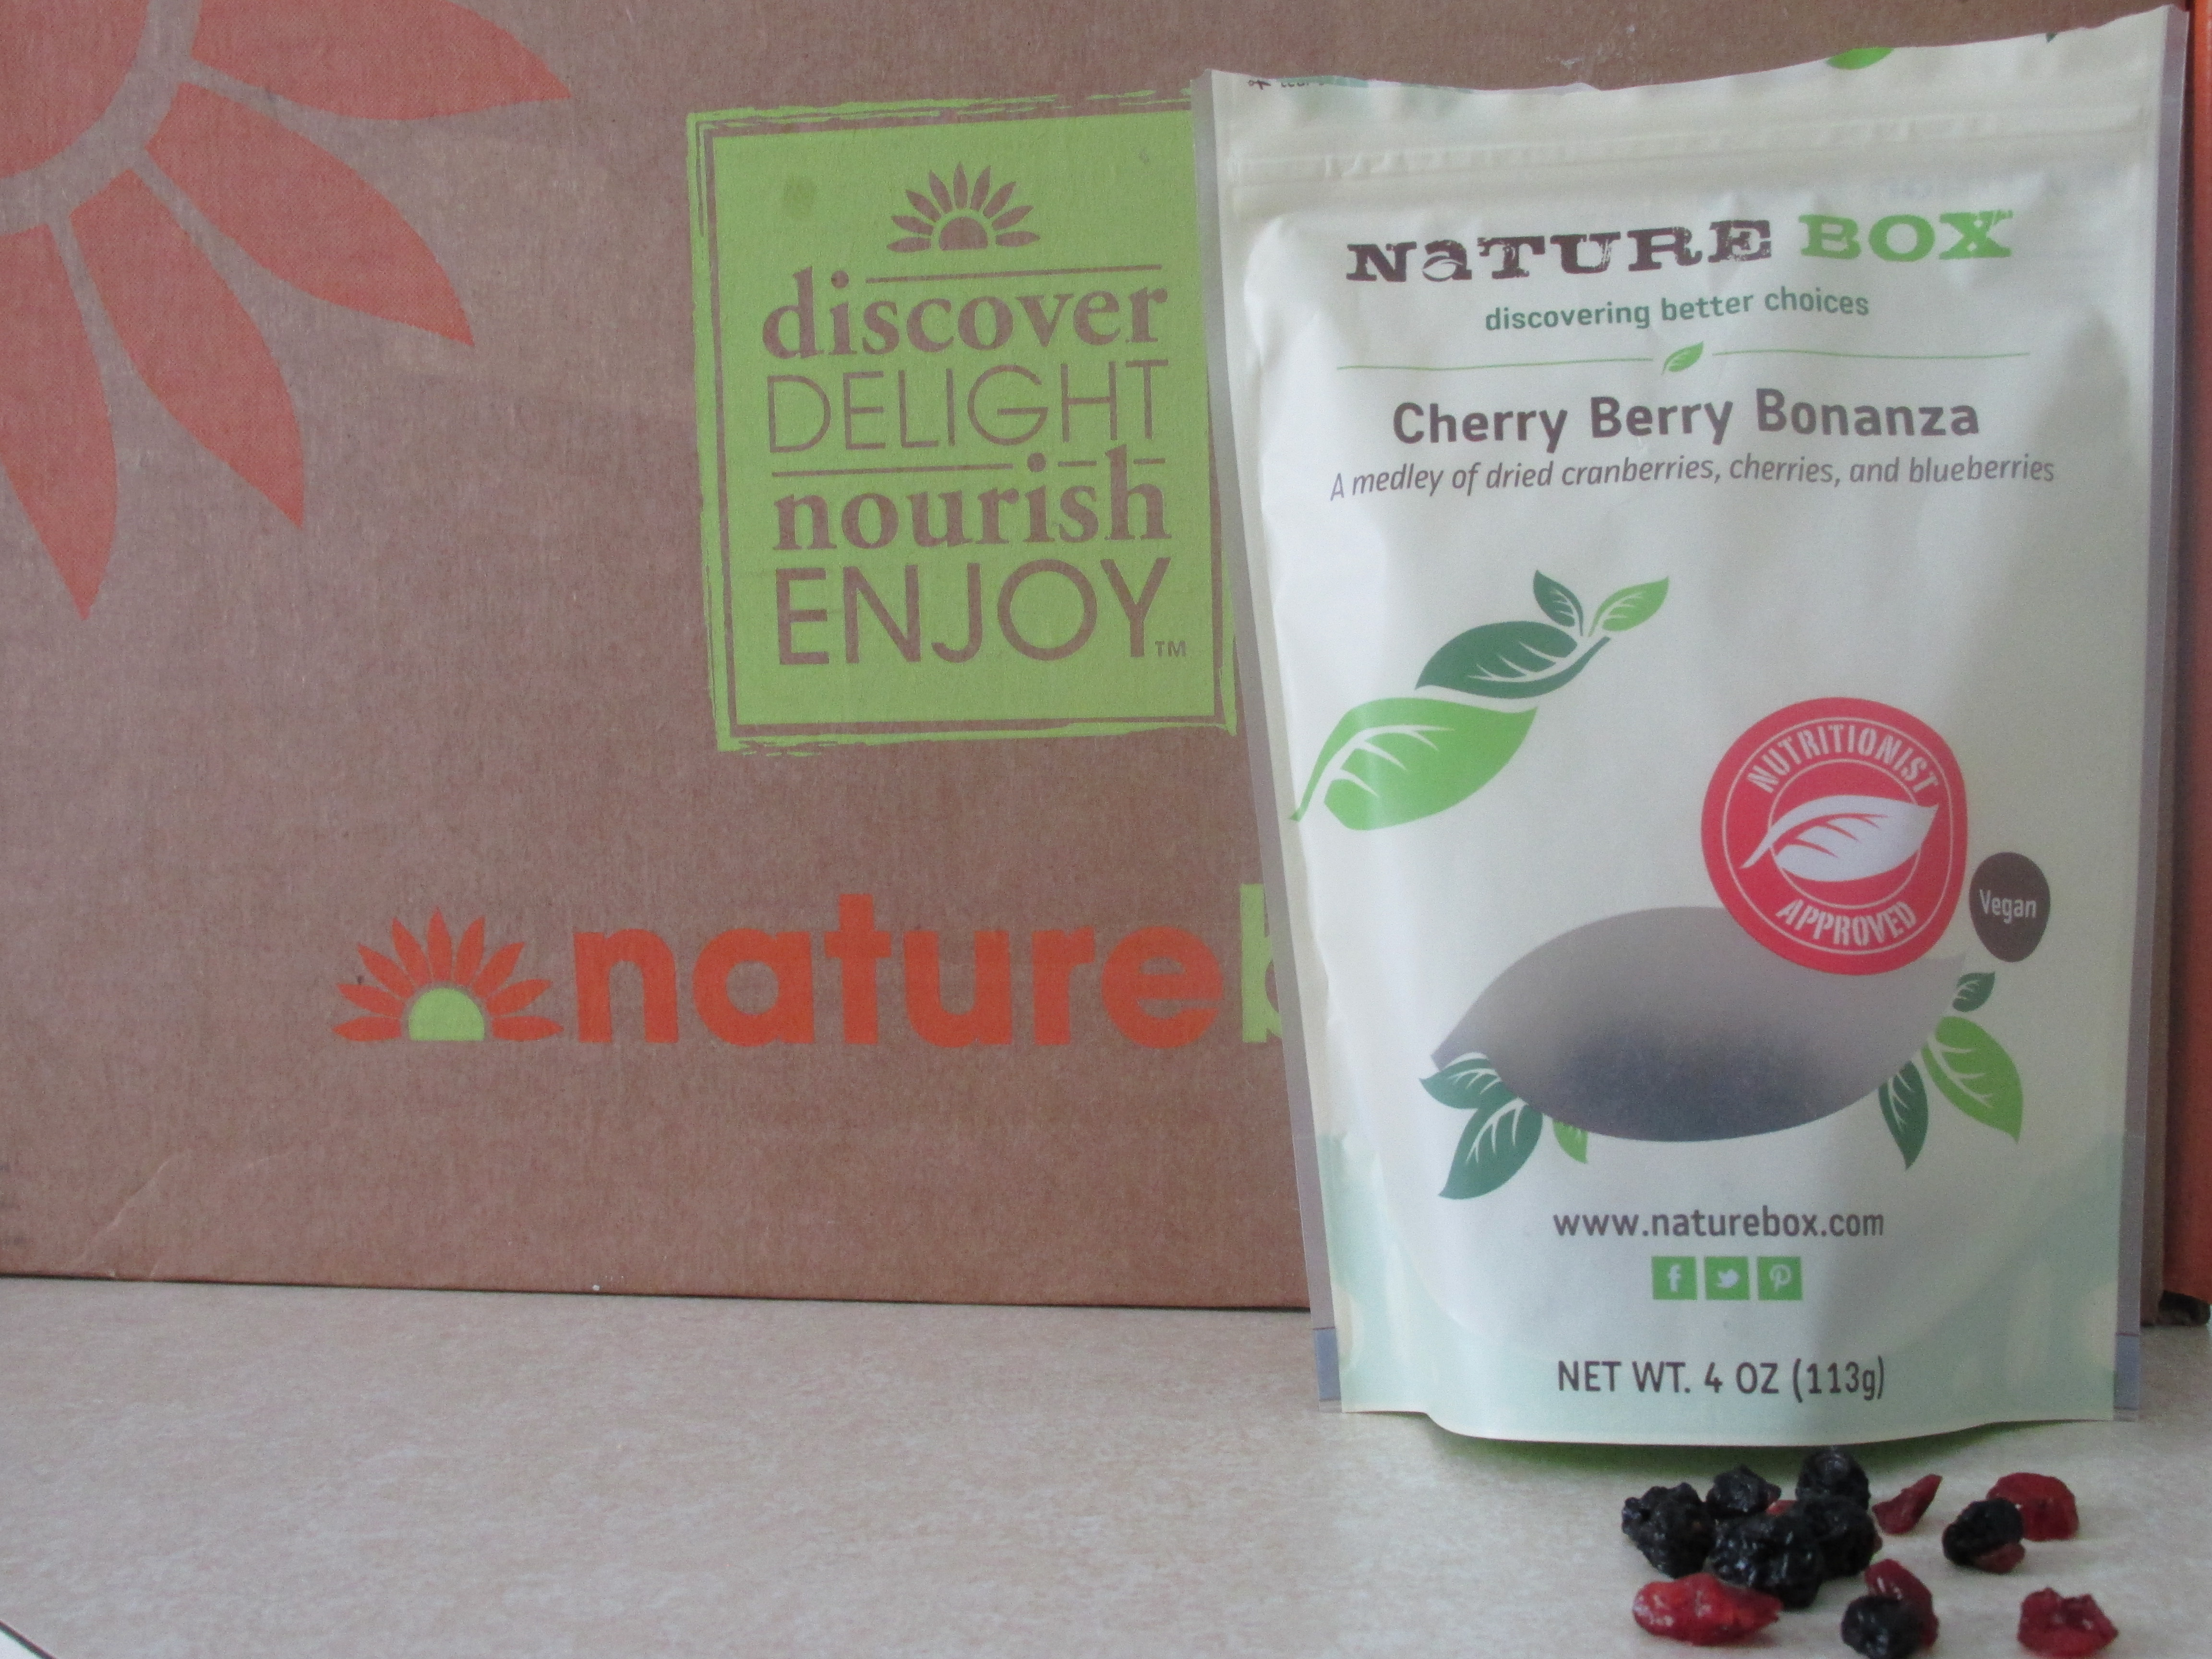 Naturebox Cherry Berry Bonanza